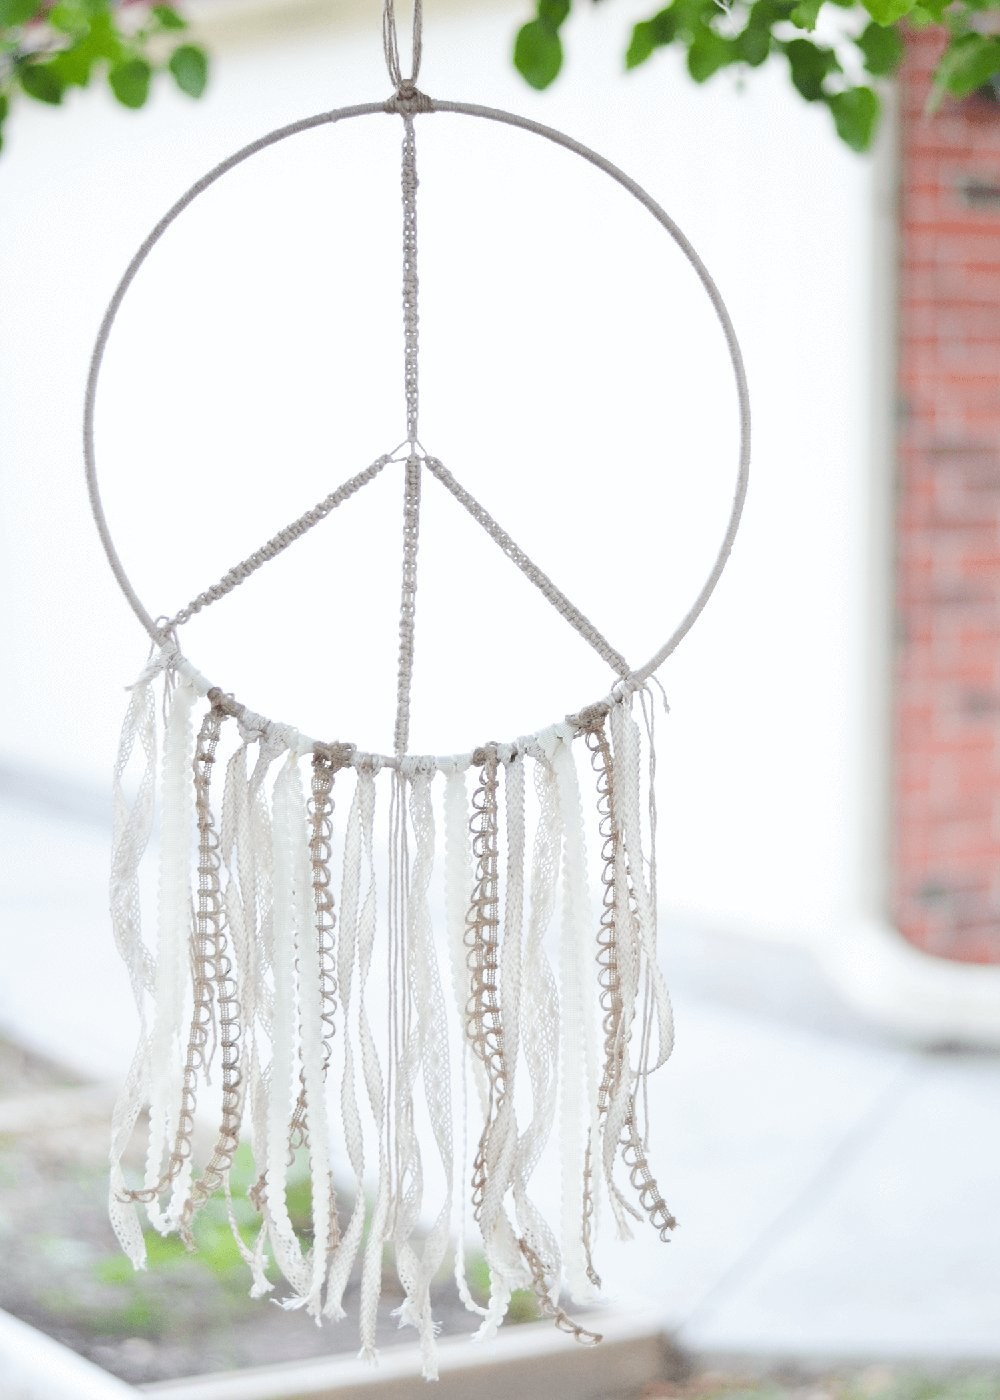 Wreaths Macrame Projects Benvo Metal Craft Hoops Dream Catcher Rings Metal Macrame Rings Steel Hoops for Dreamcatchers 10 Pieces in 10 Different Sizes Silver